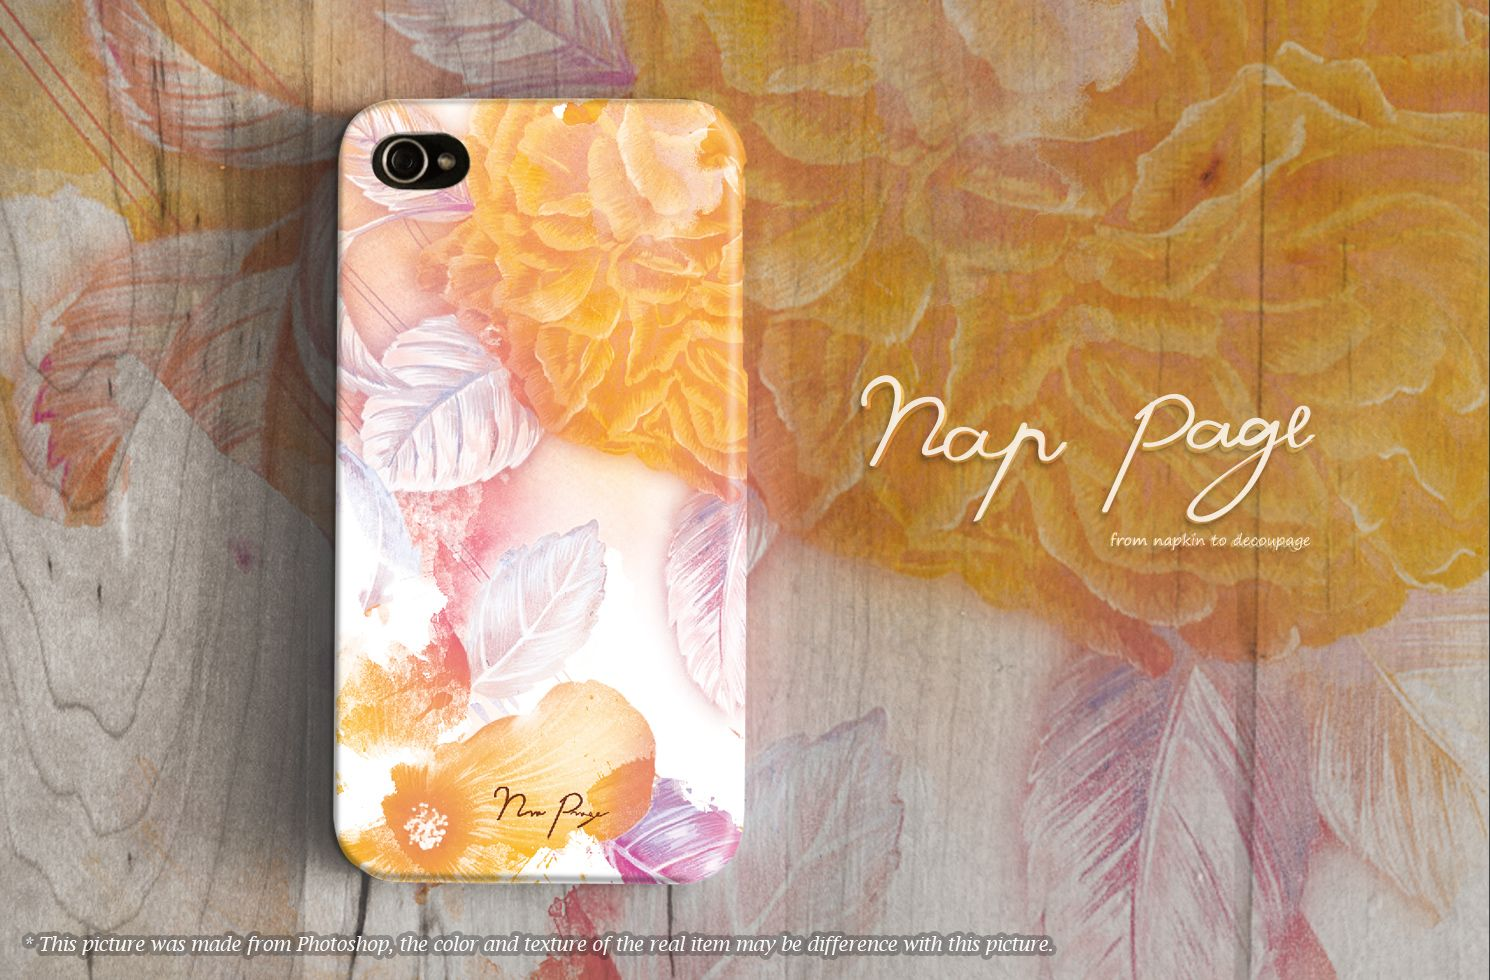 #iphonecase #iphone5case #iphone5scase #iphone5ccase #iphone6case #iphone6pluscase #iphone3gscase #case #cover #apple #nappage #nappagecase #nappagestore #gift #newyear #colorful #new #shopping #case #cover #nappage #nappagecase #likeit #loveit #iphone6 #iphone6plus #art #shopping #flower #women #loveit #likeit #nice #bright